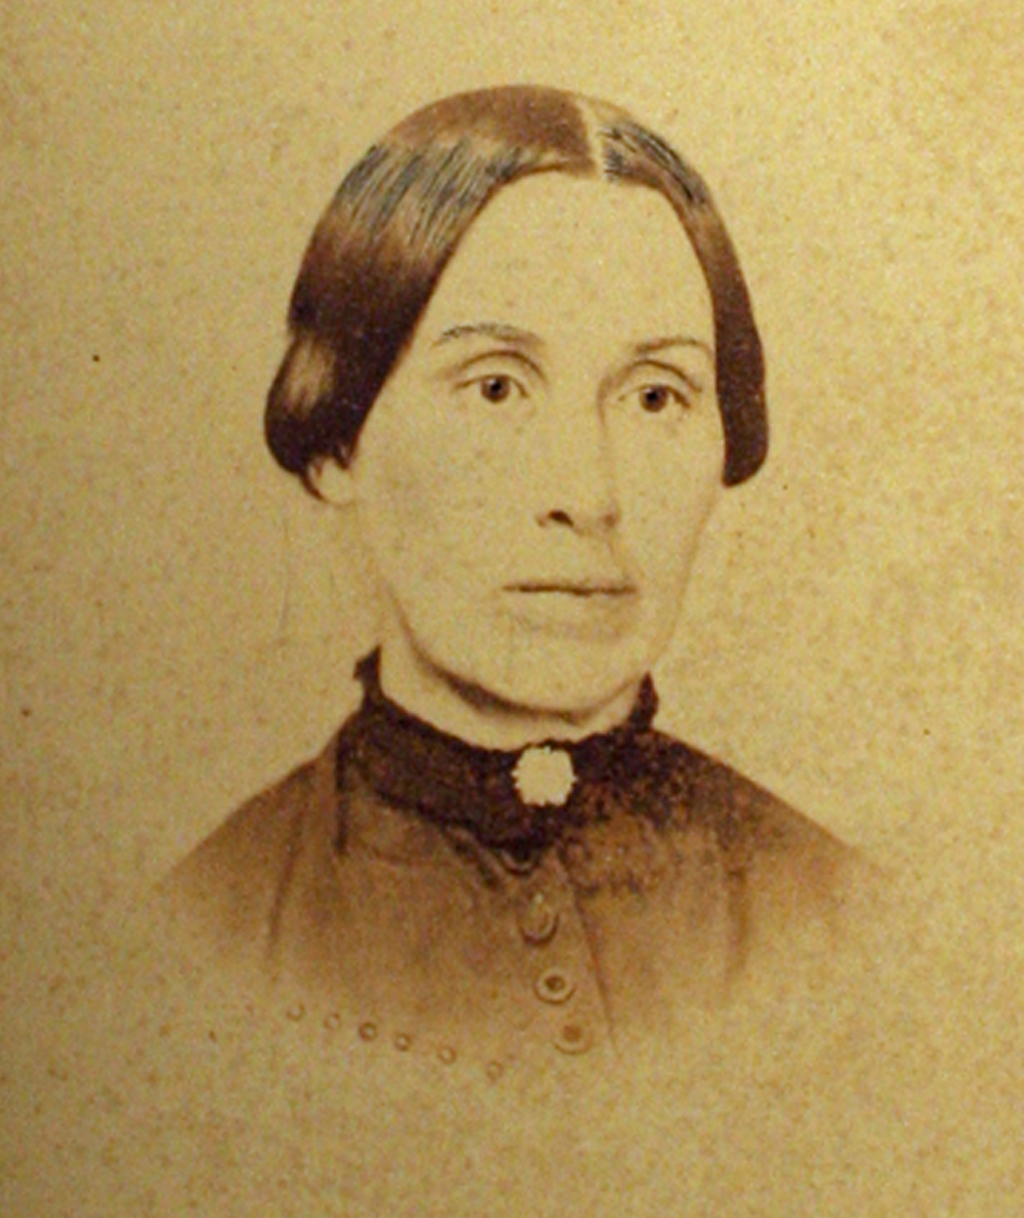 Sarah Siegfried. Photograph by G. Wm. White. Courtesy of Special Collections, Boston Public Library.